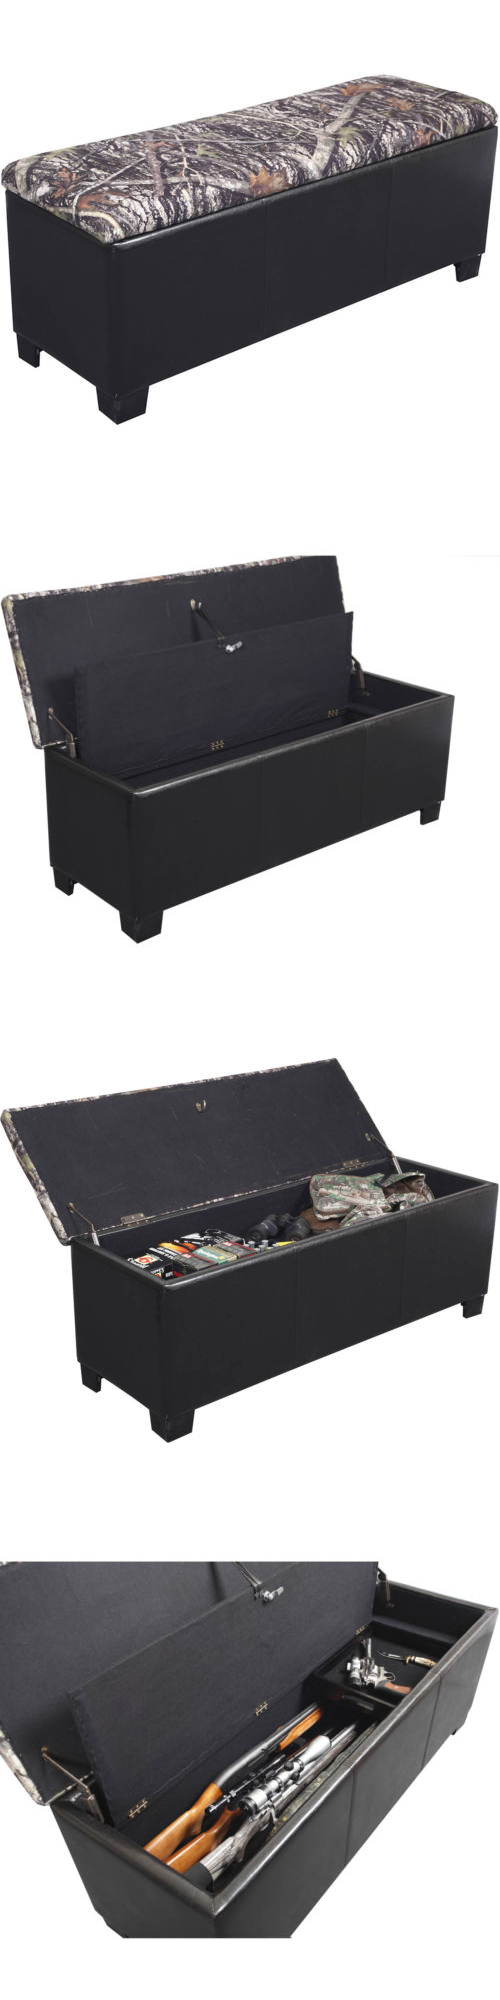 Cabinets and Safes 177877: Hidden Gun Storage Concealment Bench Camo Safe Cushioned Firearm Handgun Rifle -> BUY IT NOW ONLY: $157.74 on eBay!